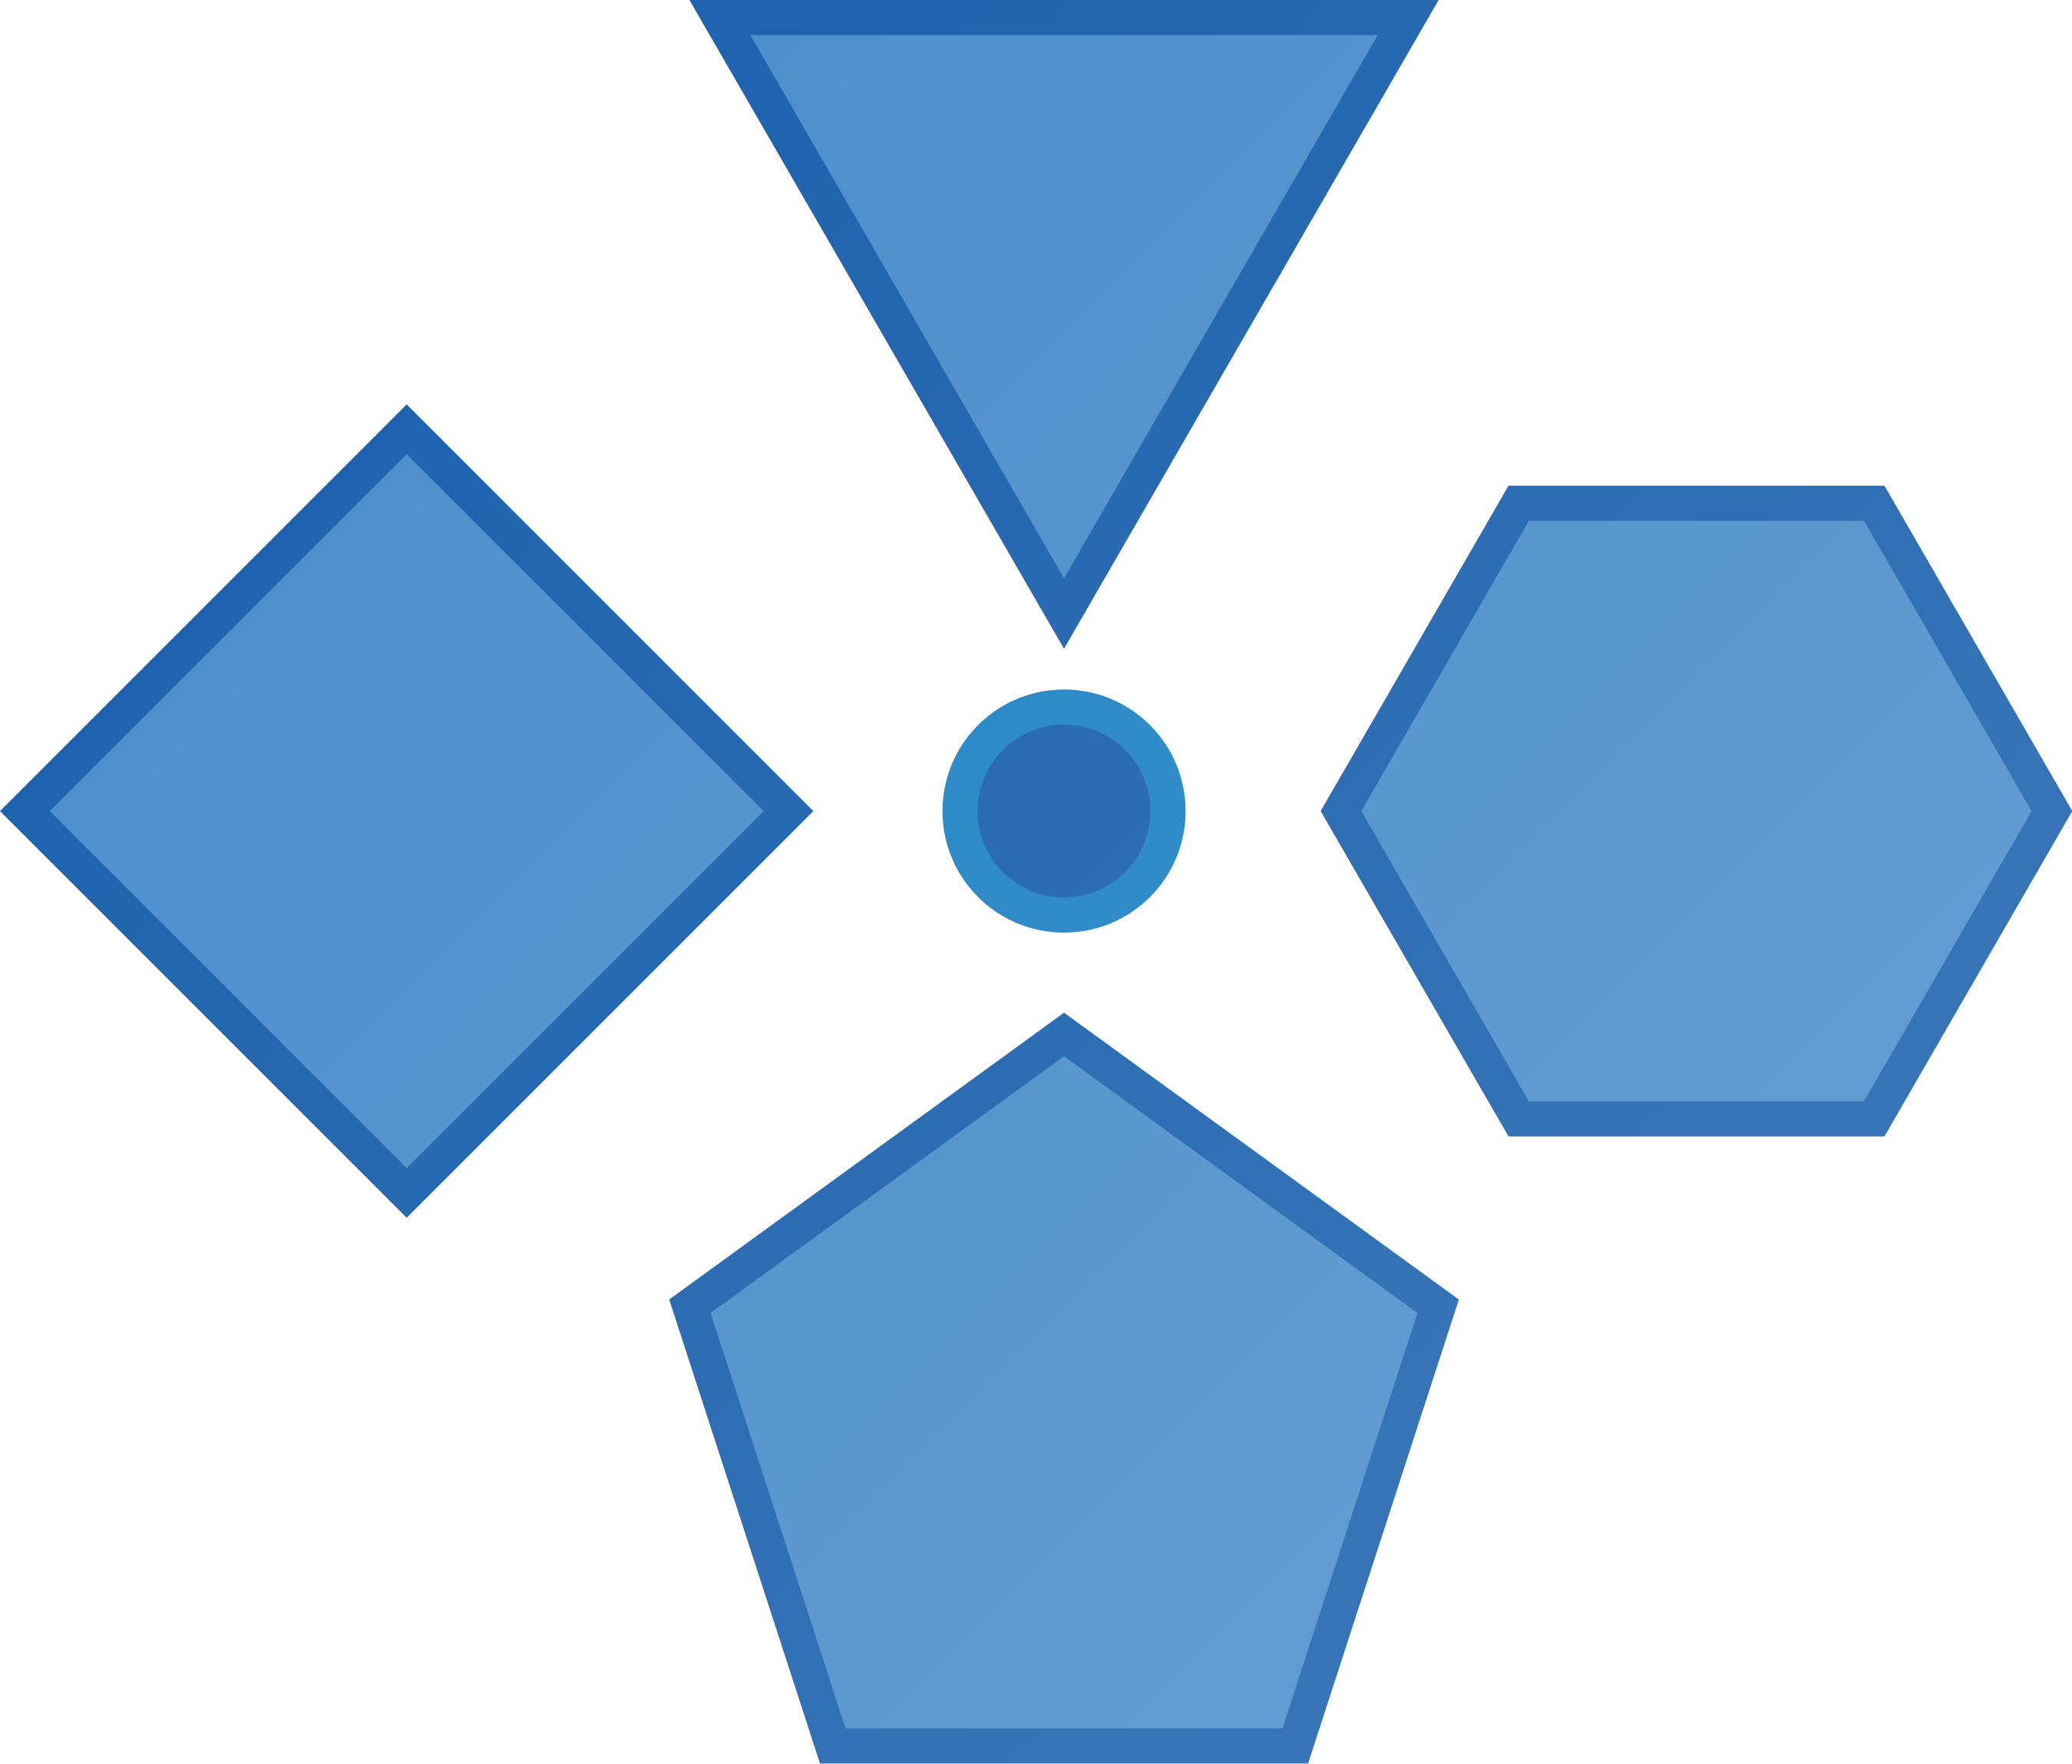 GitHub - lab11/polypoint: Indoor localization based on the